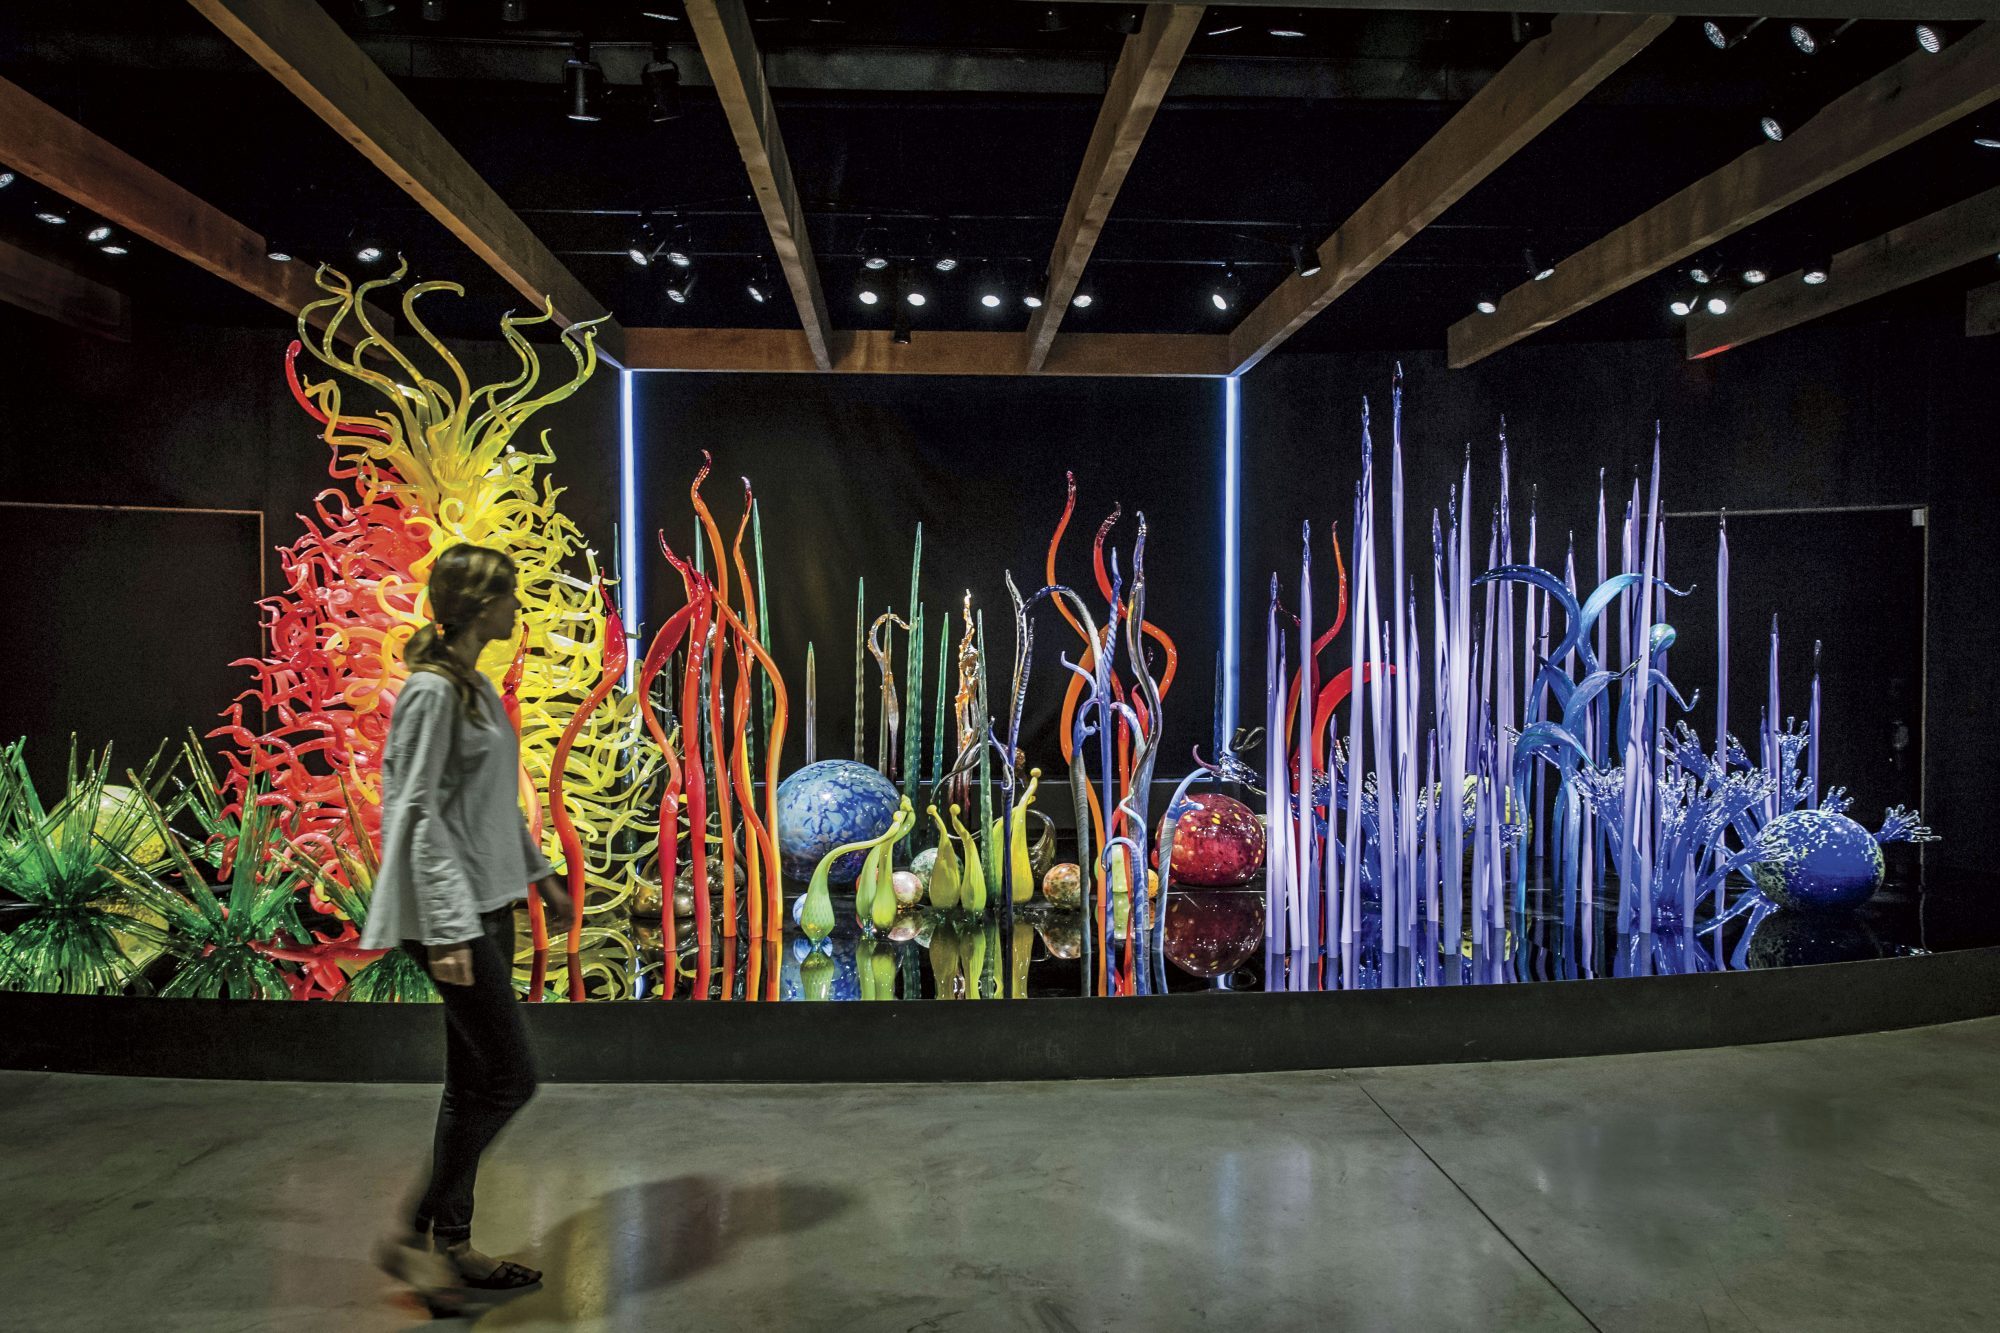 Chihuly Glass in St. Petersburg FL